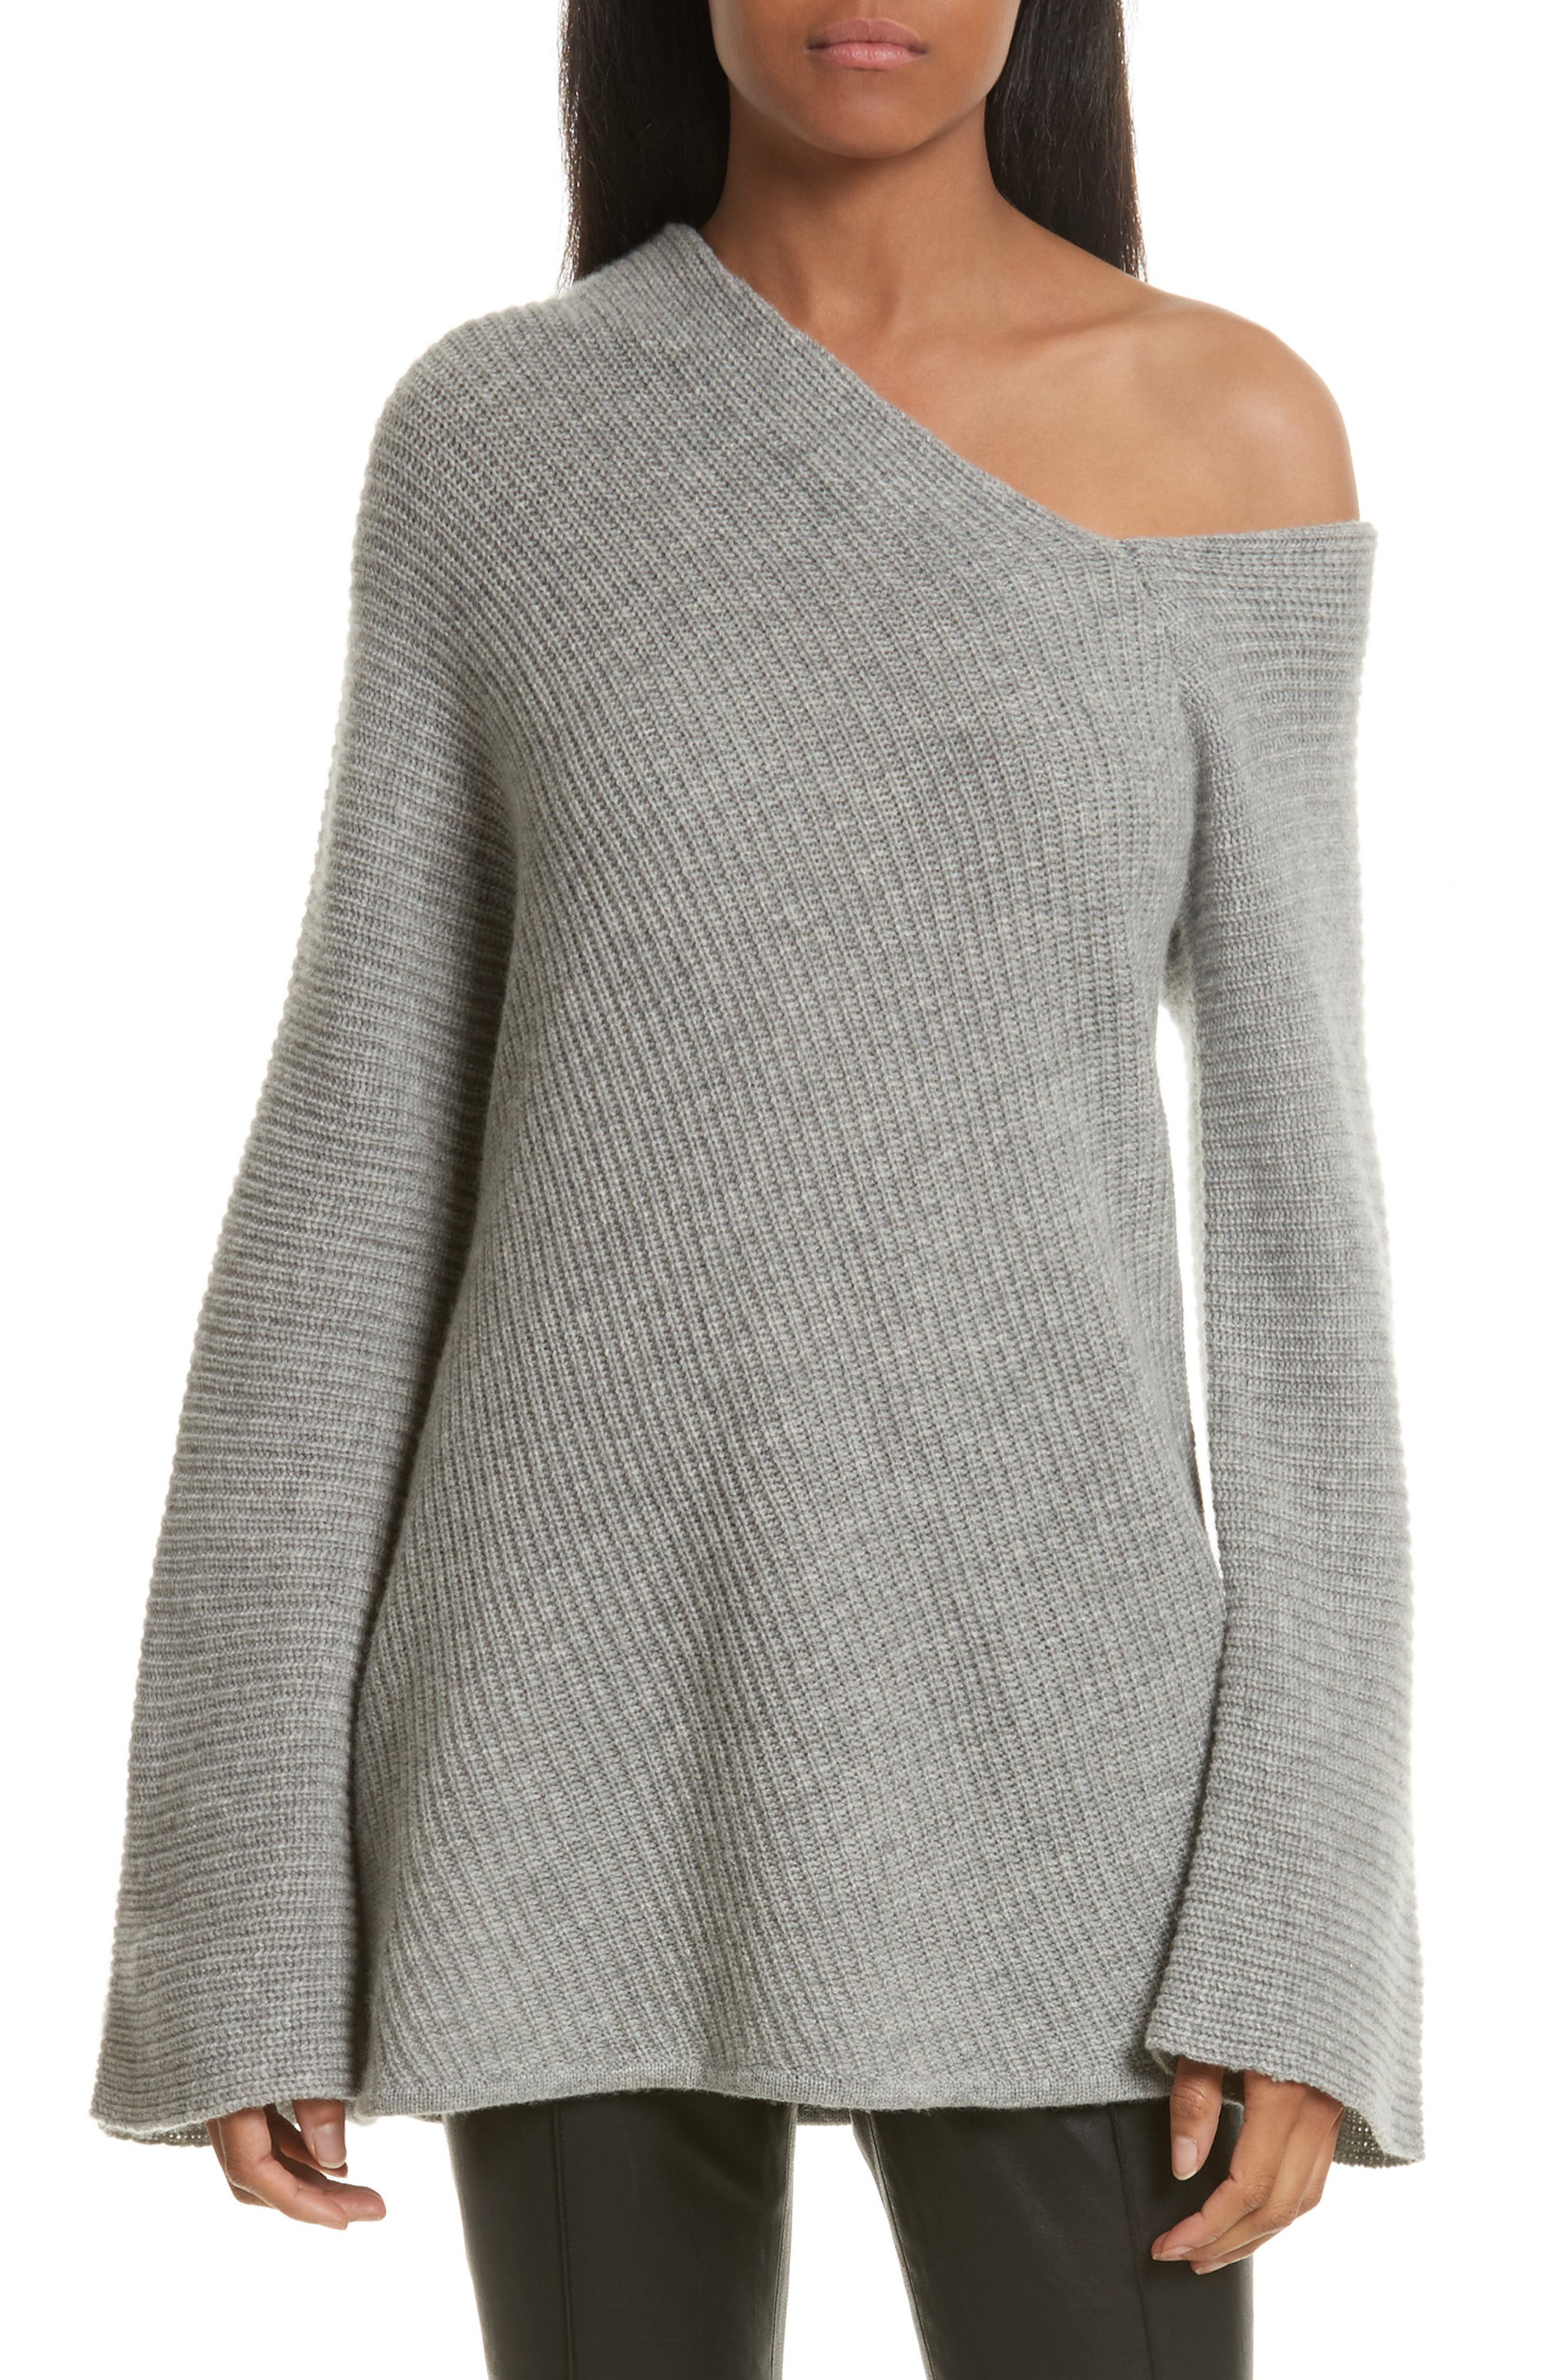 Alternate Image 1 Selected - A.L.C. Charly Wool & Cashmere One-Shoulder Sweater